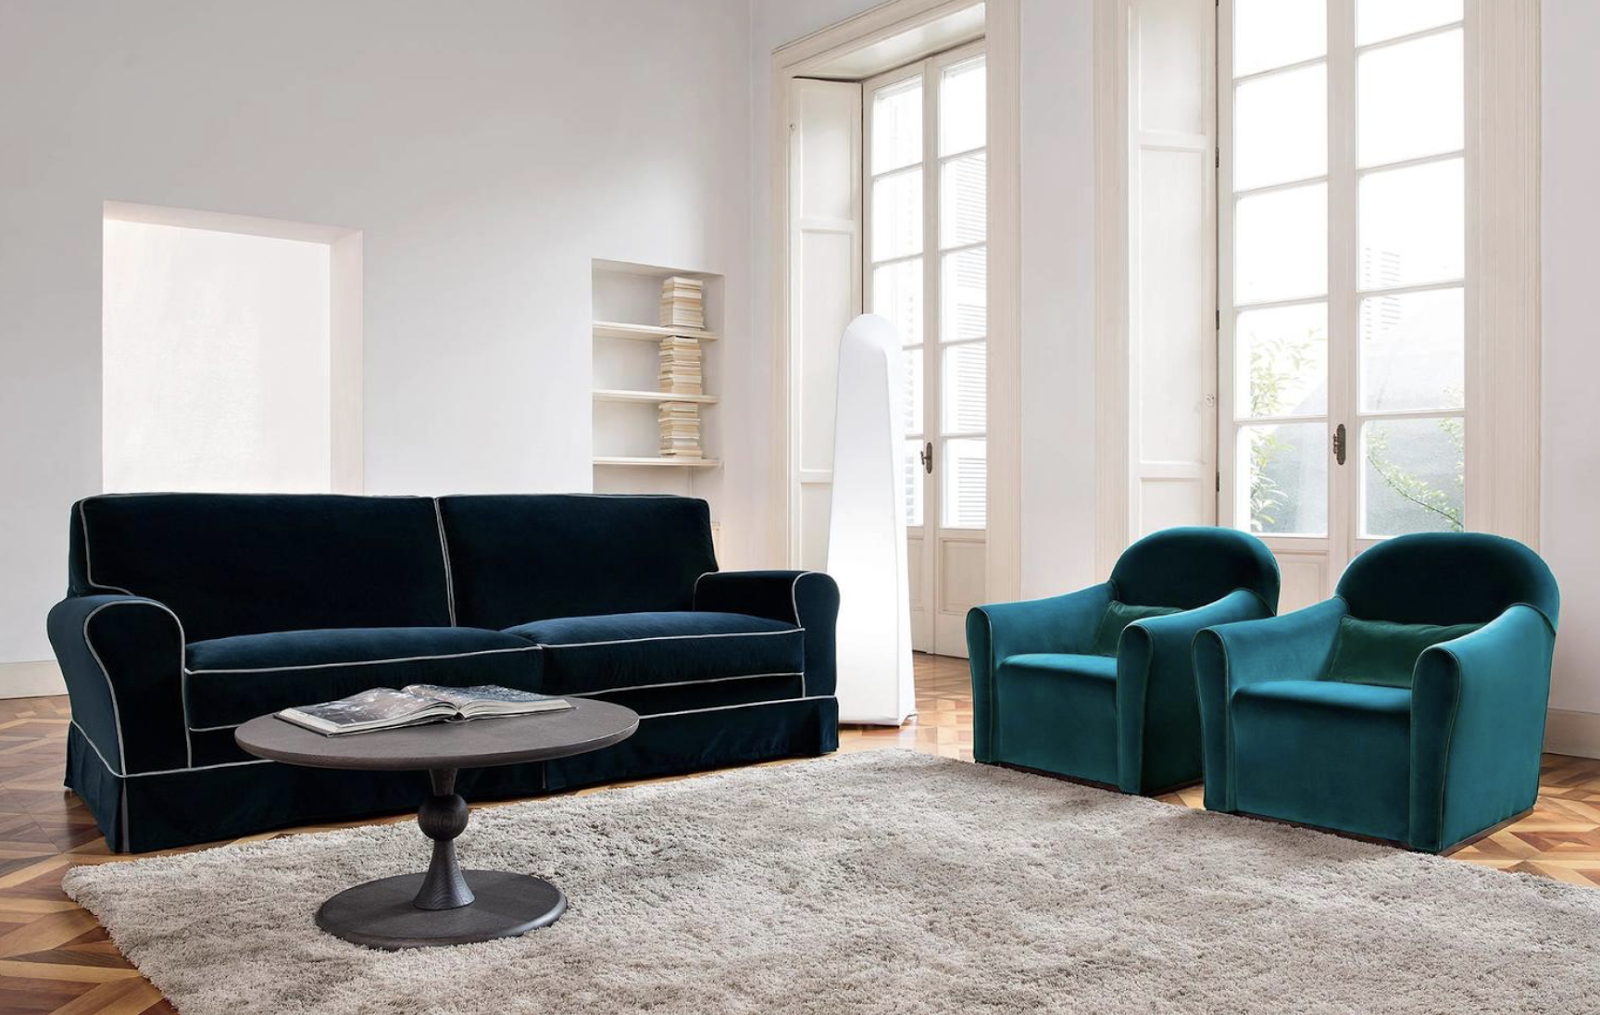 Momentoitalia italian furniture blog an italian for Stylish modern furniture